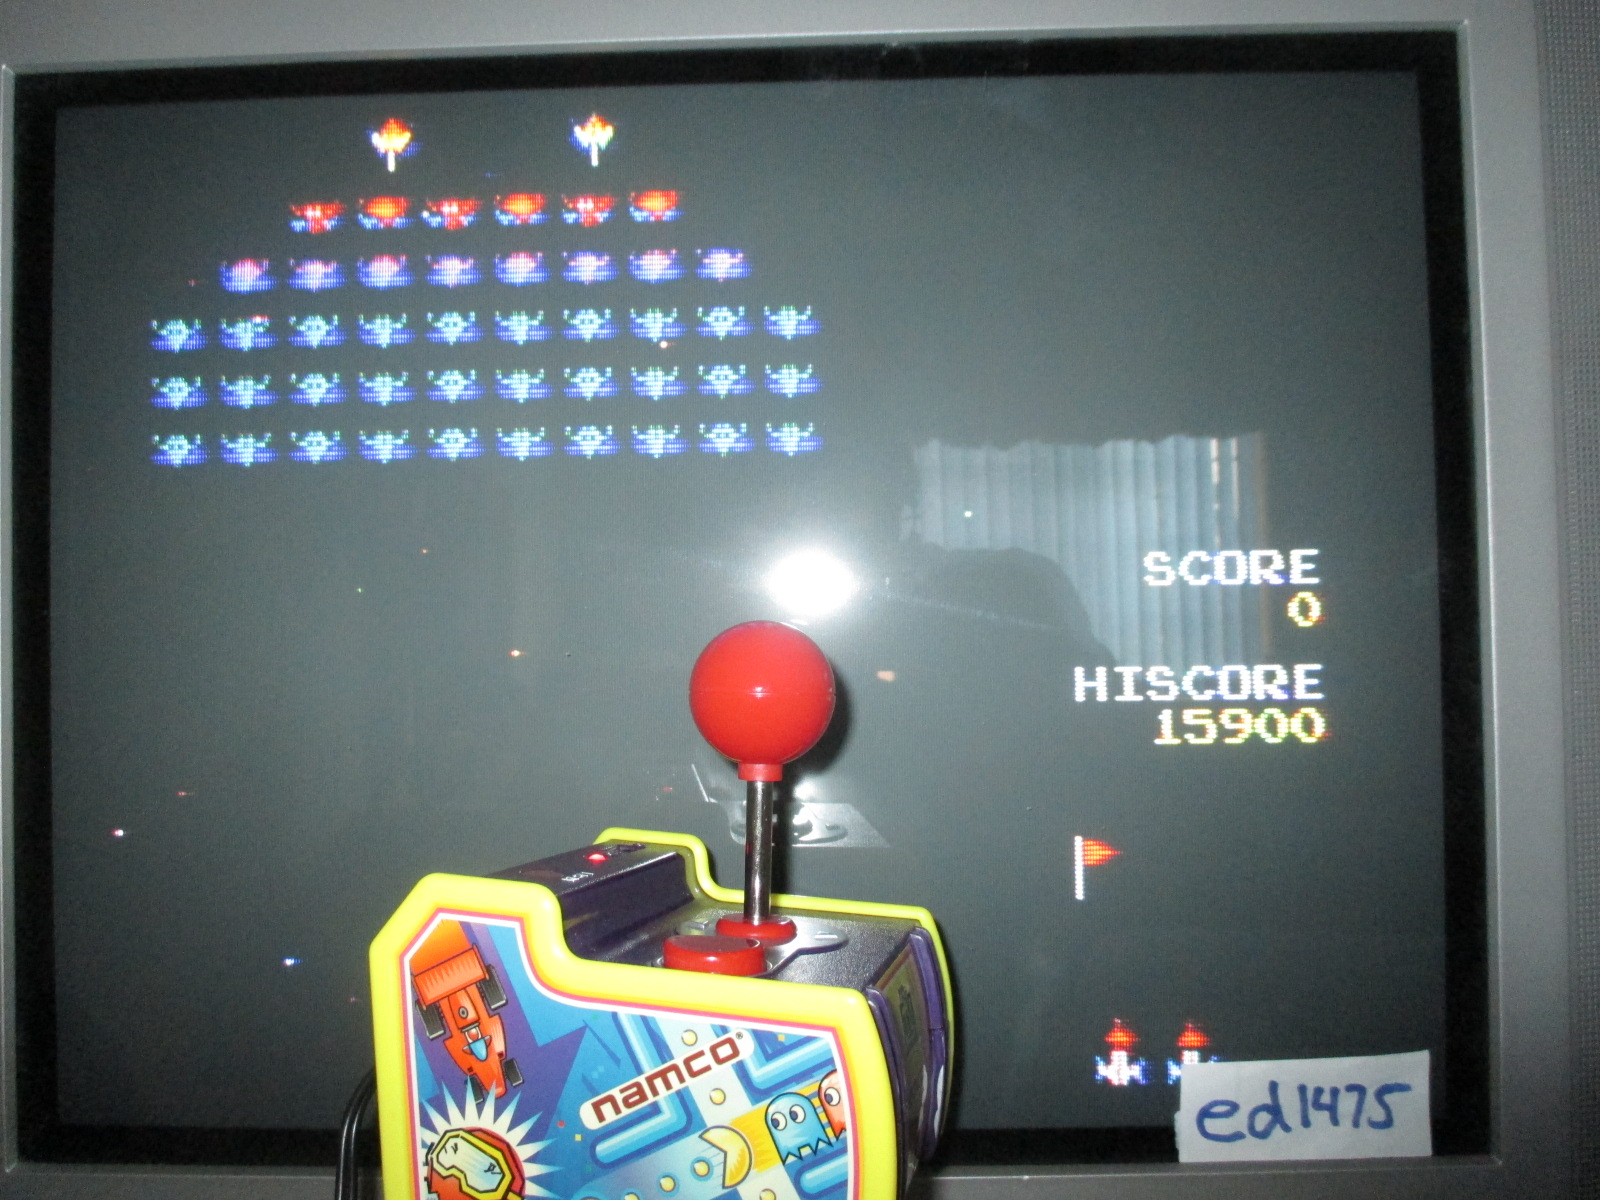 ed1475: Galaxian (Jakks Pacific Pac-Man TV) 15,900 points on 2014-06-08 19:15:09